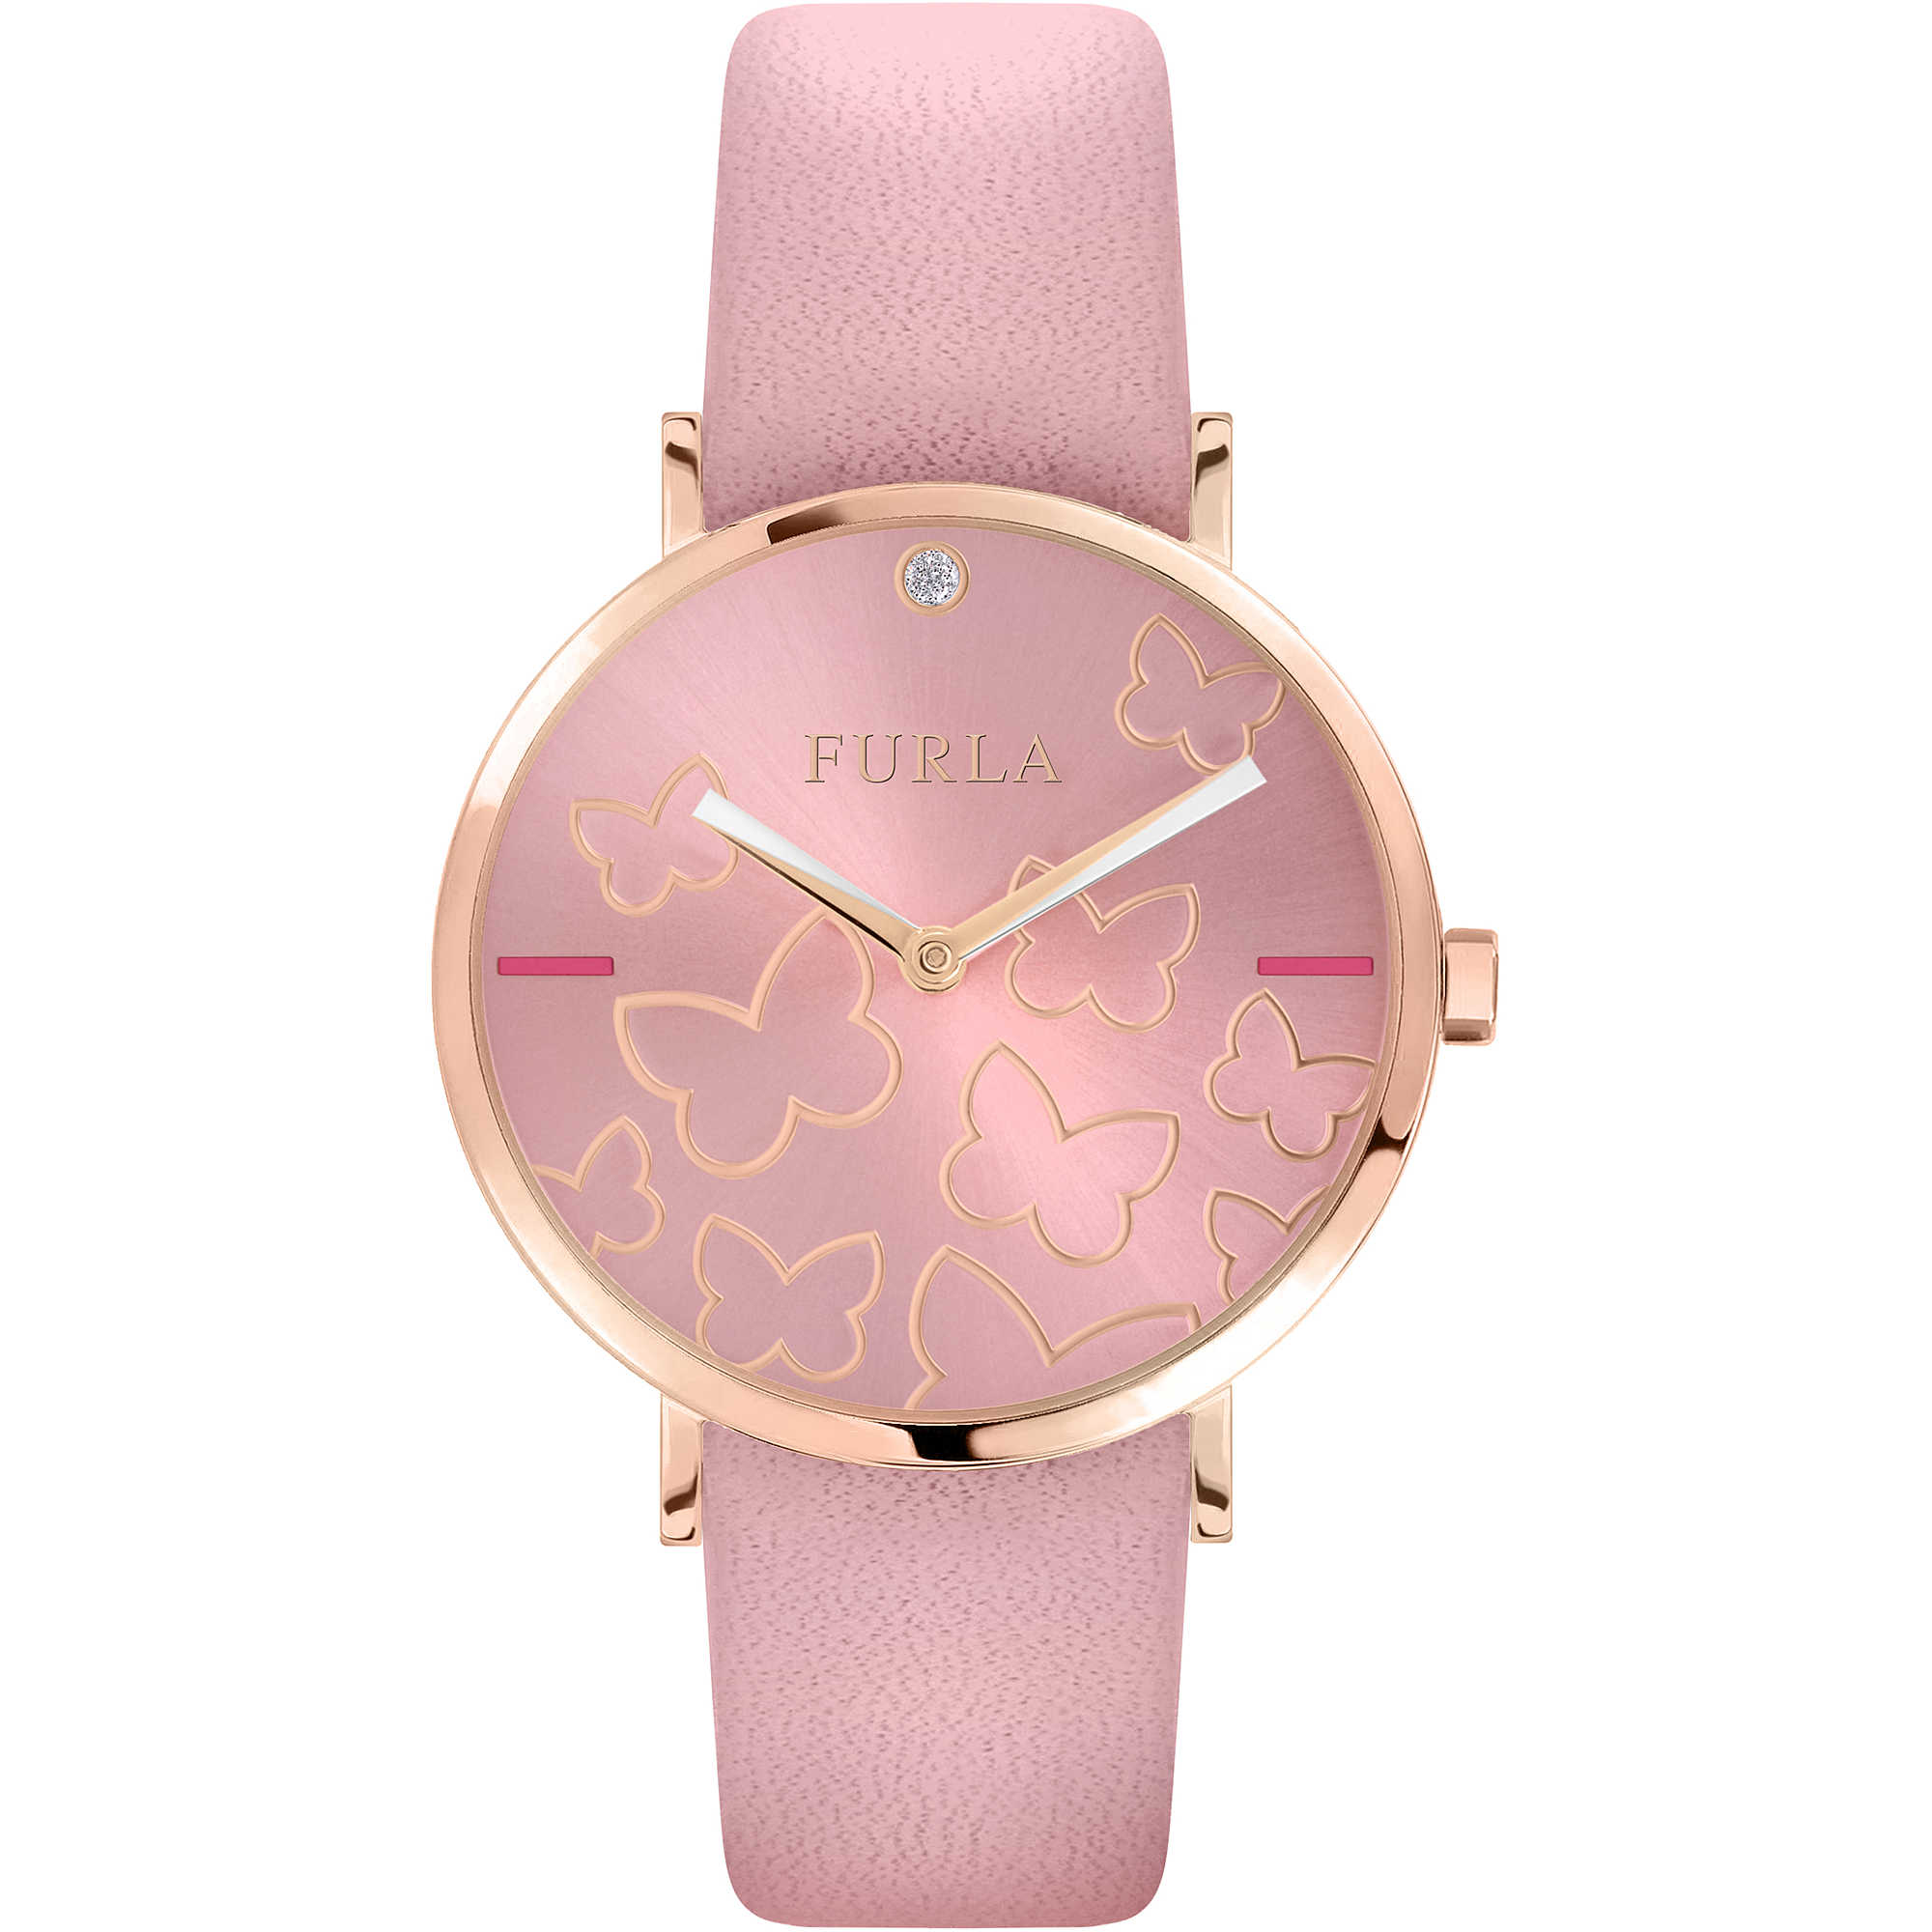 zahrajani watch shop butterfly print watches